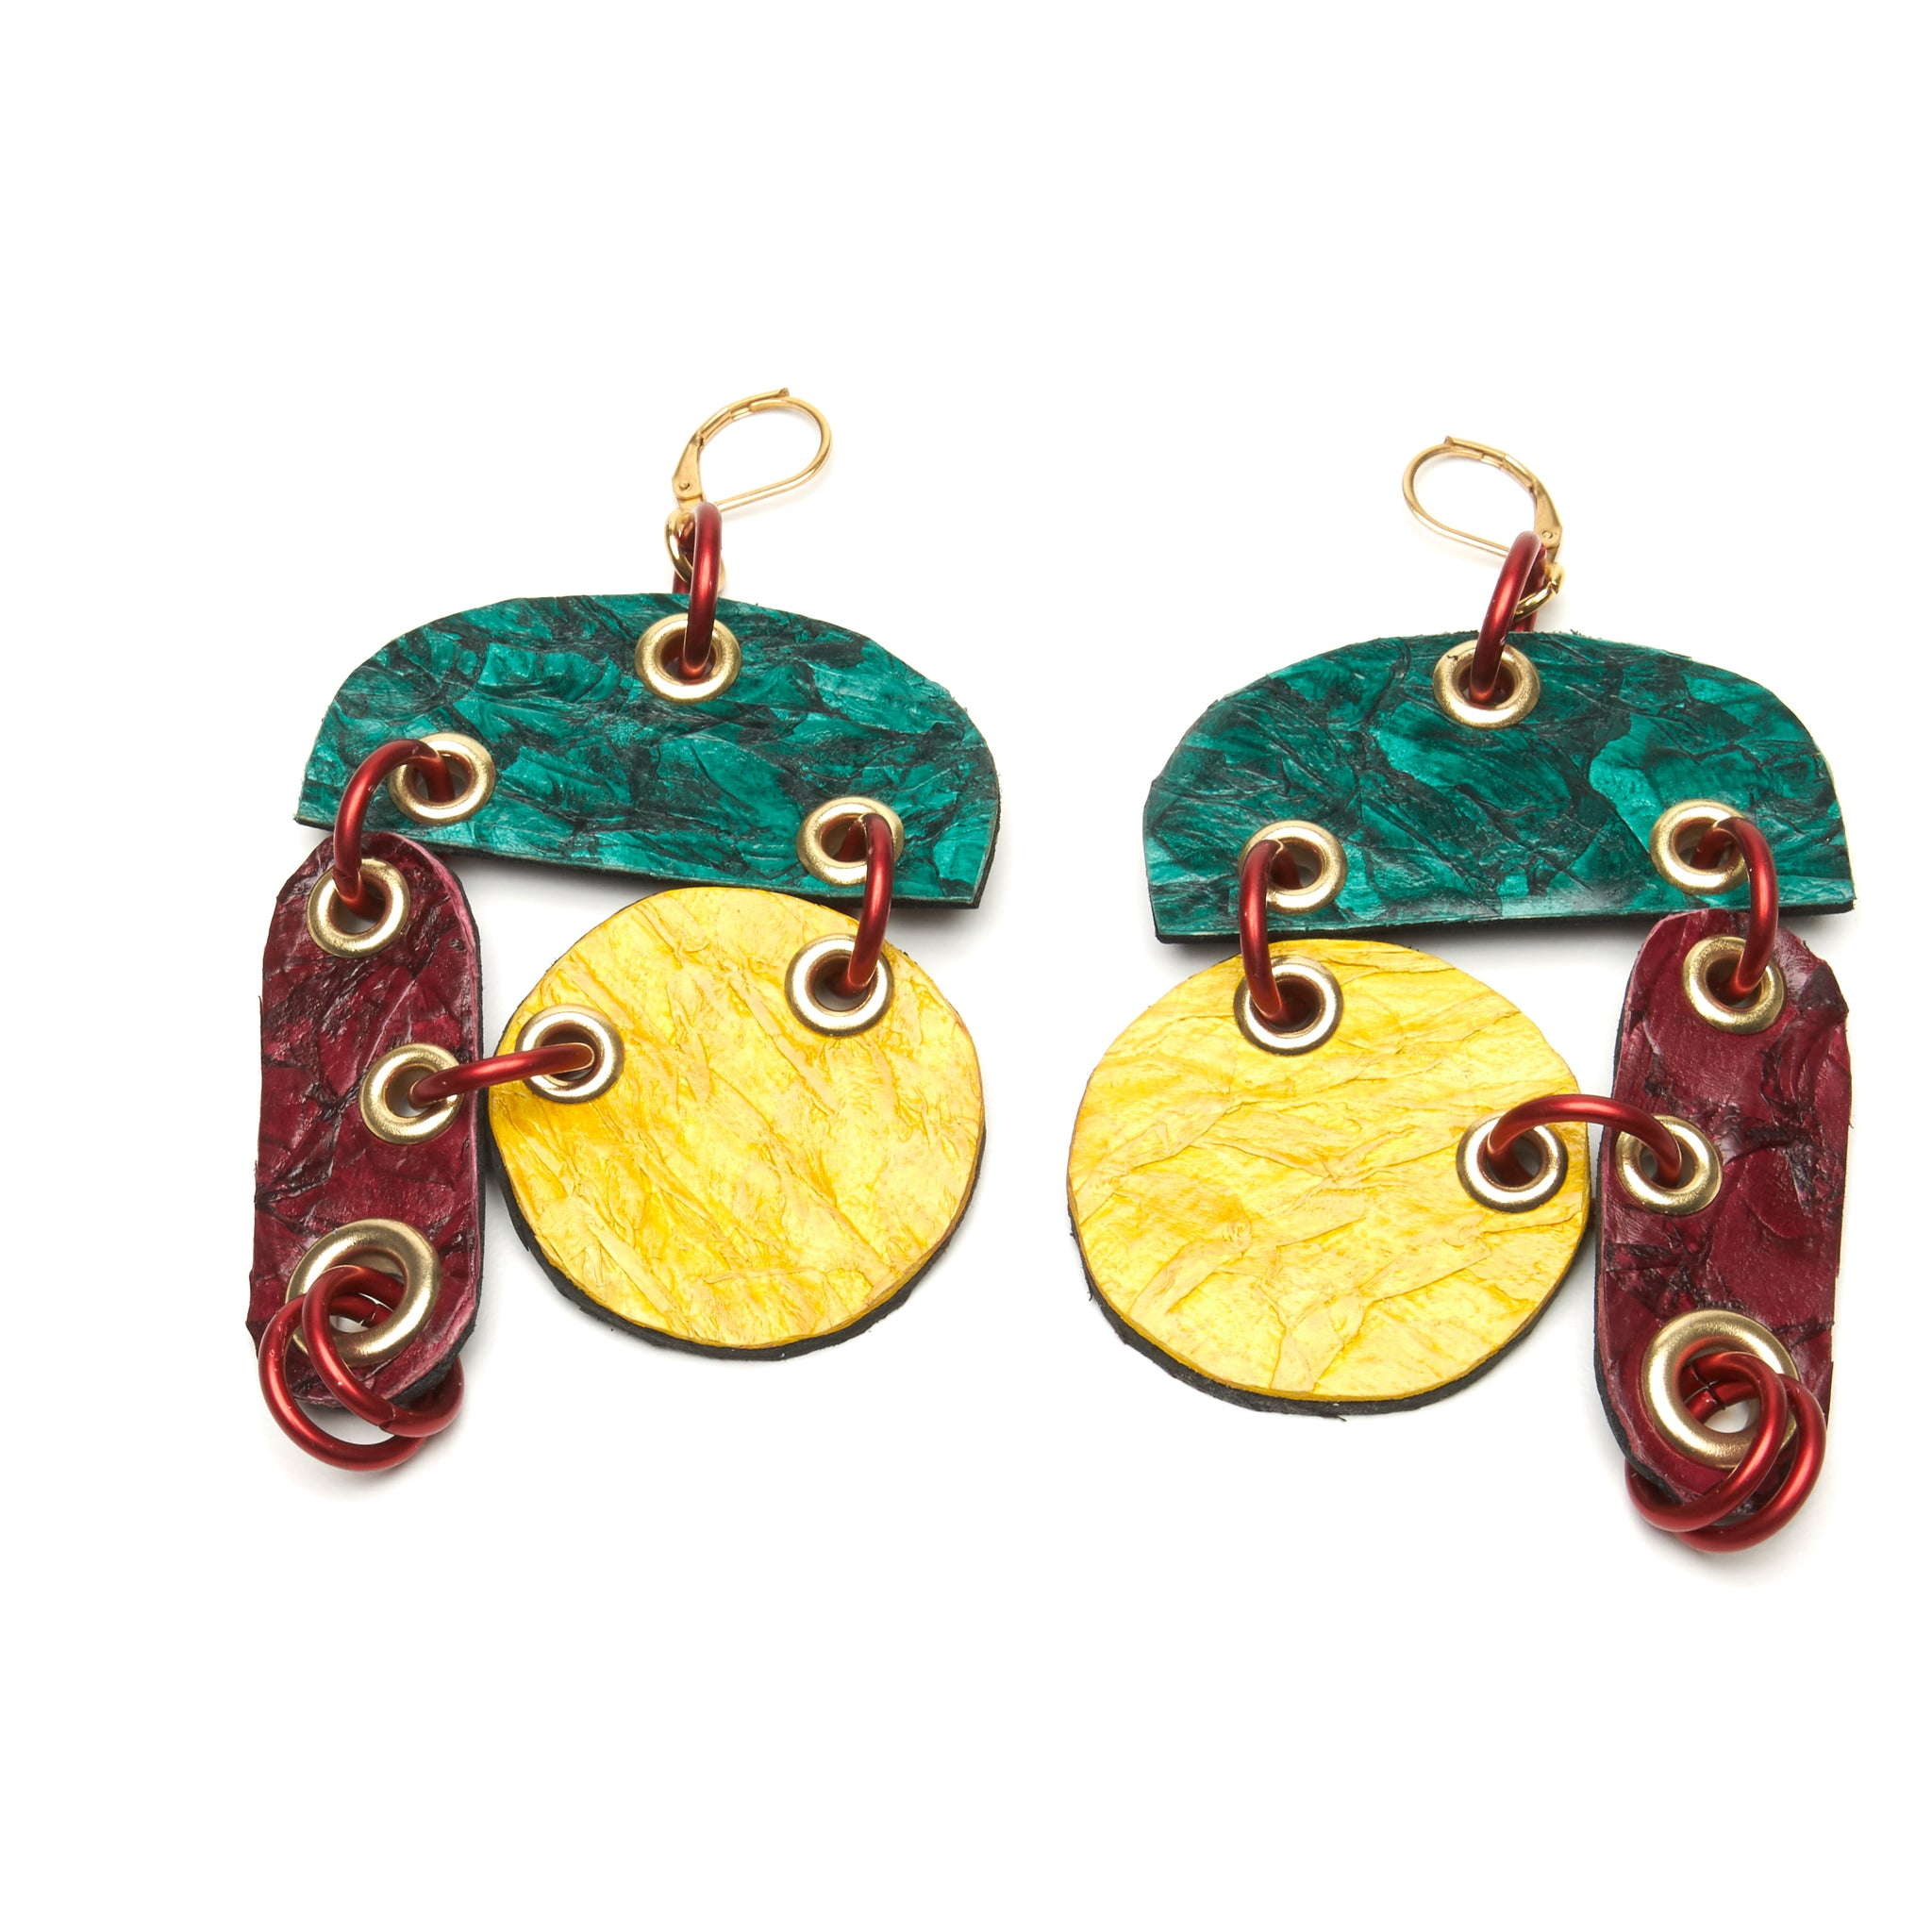 FISH leather multi color earrings by NYET Jewelry.